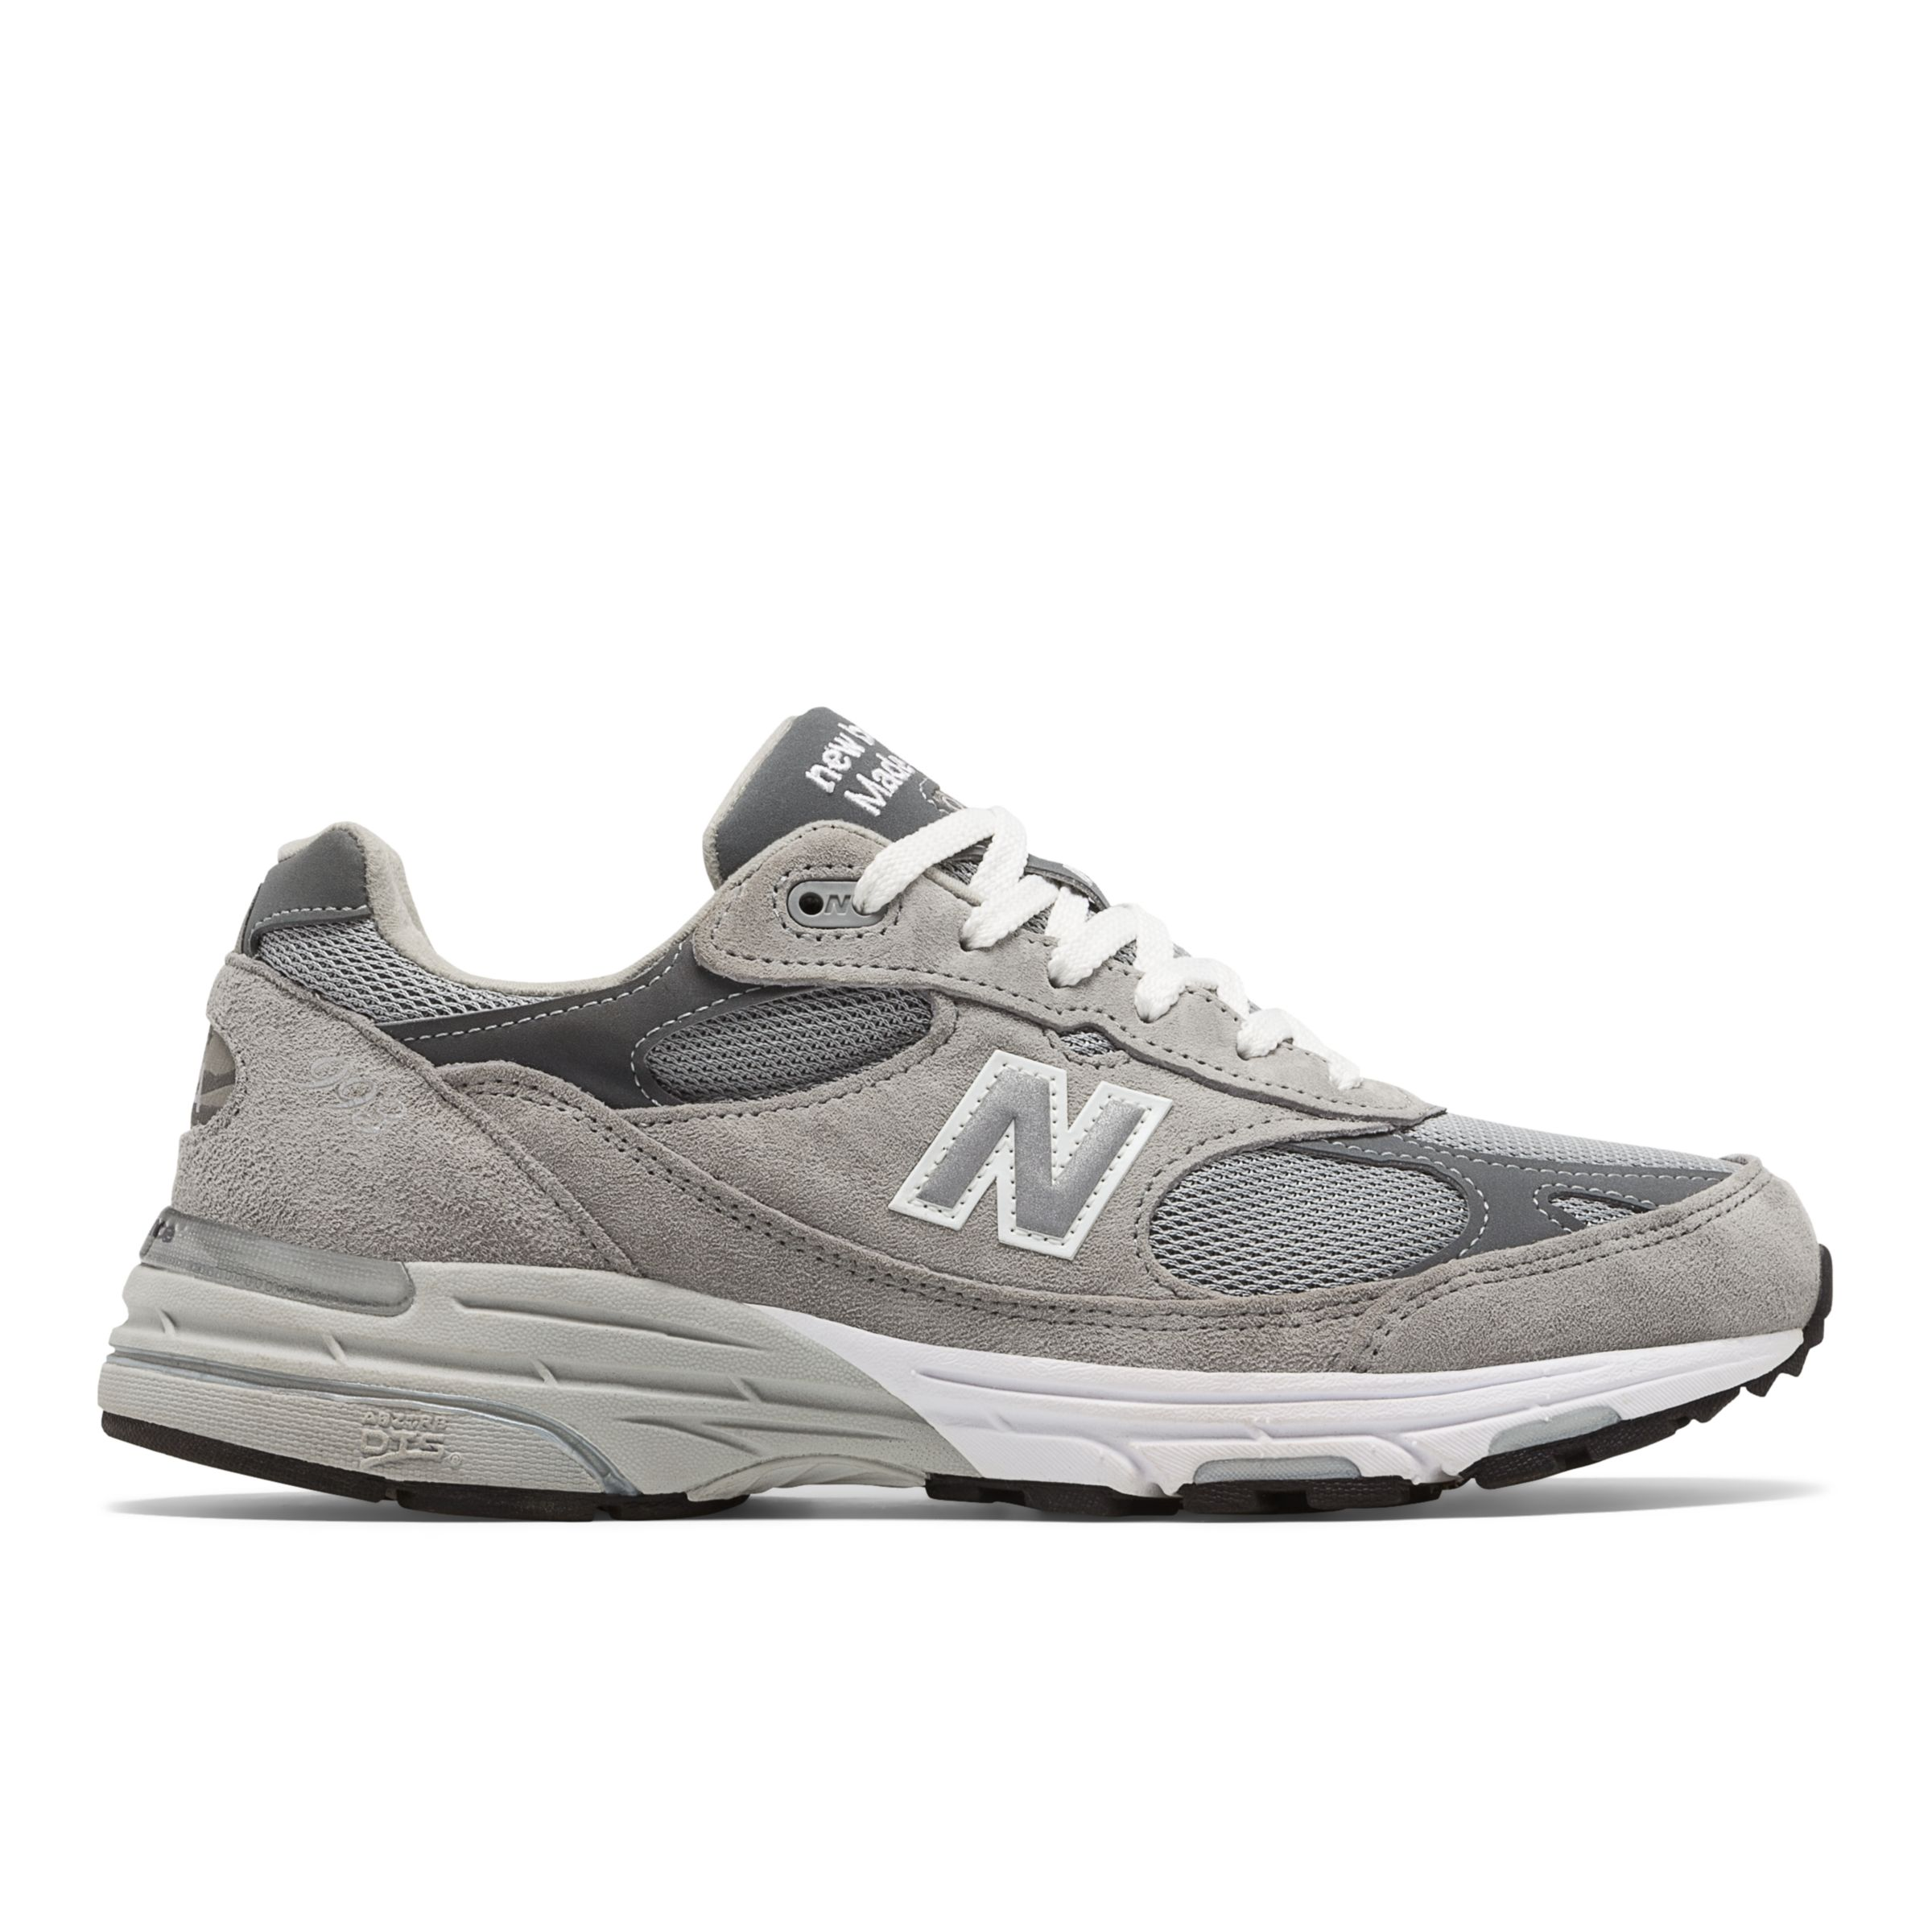 06c9f89a47ceb The WR993GL is now available at Shop New Balance for $144.99. Superior  comfort meets classic style with this durable high-mileage trainer.